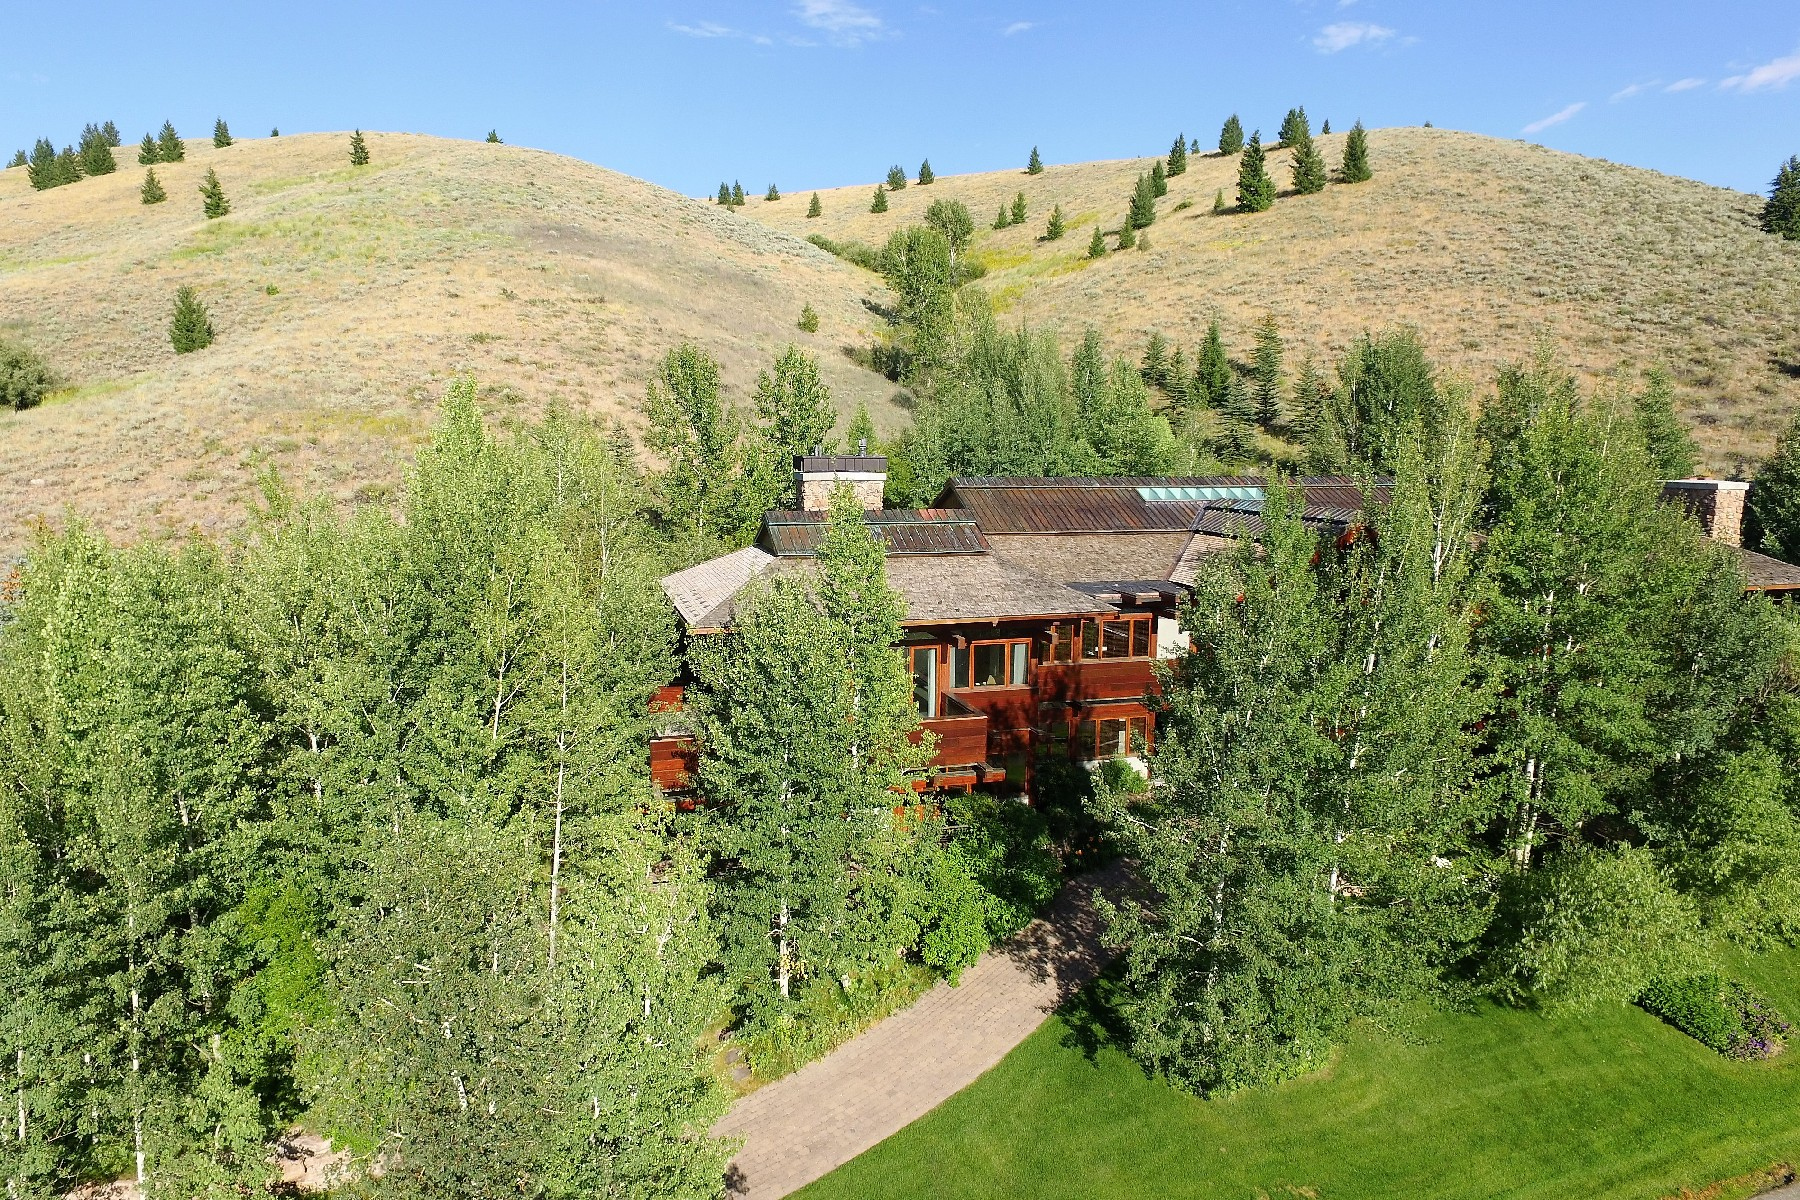 Single Family Homes for Sale at Architectural Splendor 175 Stoneridge Rd Ketchum, Idaho 83340 United States